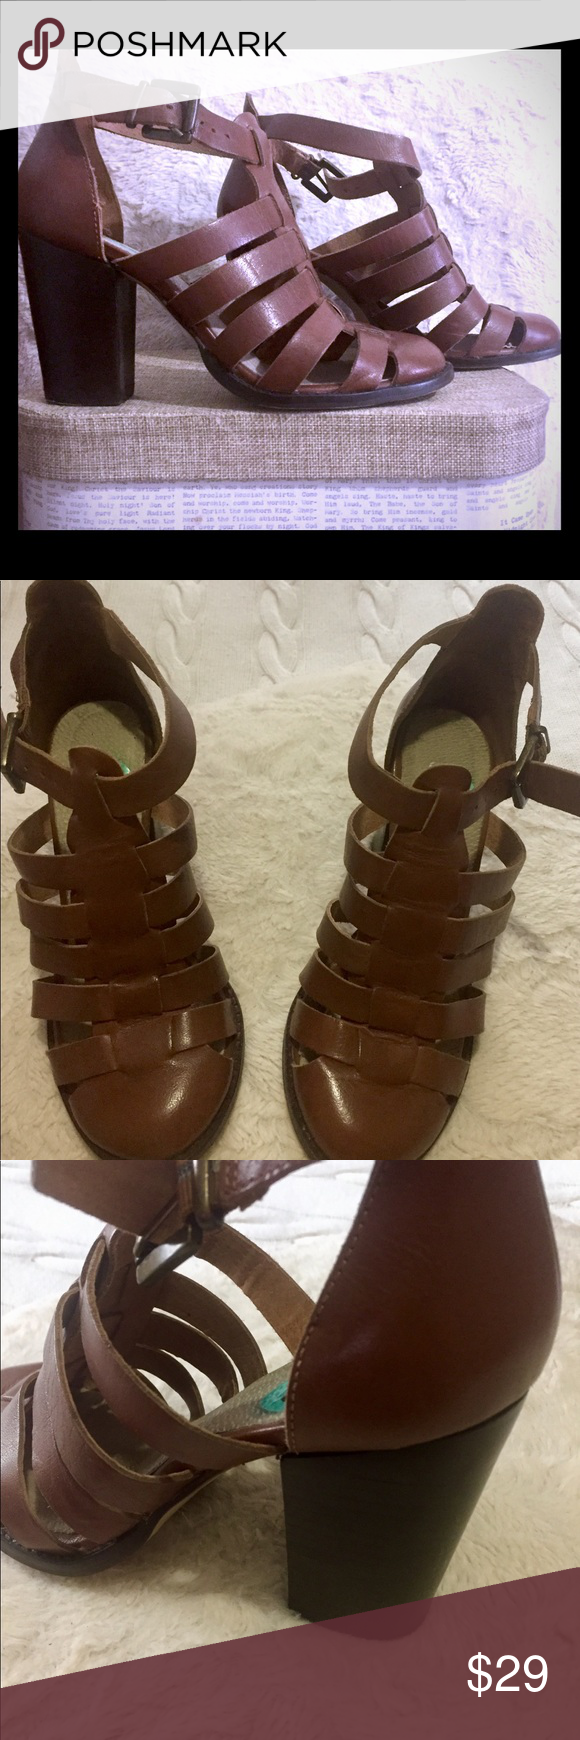 Heels shoes Beautiful and casual shoes, upper leather. Lining leather, brown color. made India. Use 2/3 times. Look like new. Shoes Heels